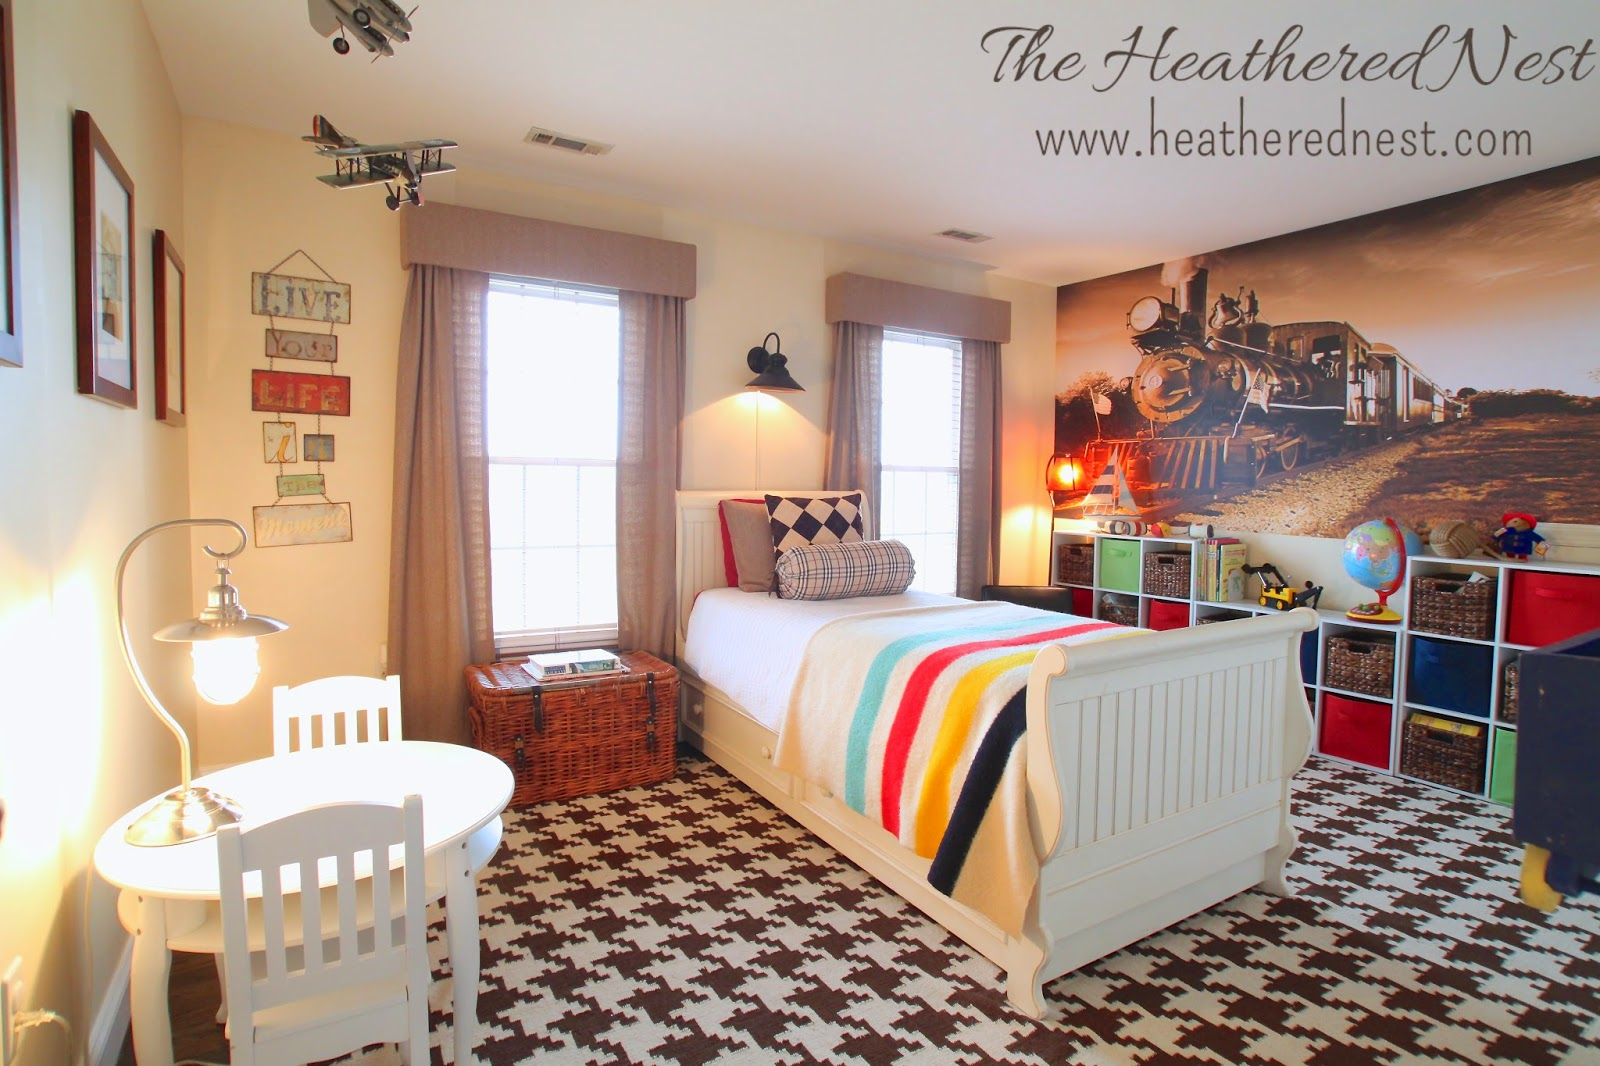 On Designing A Boy 39 S Room Our Train Of Thought The Heathered Nest